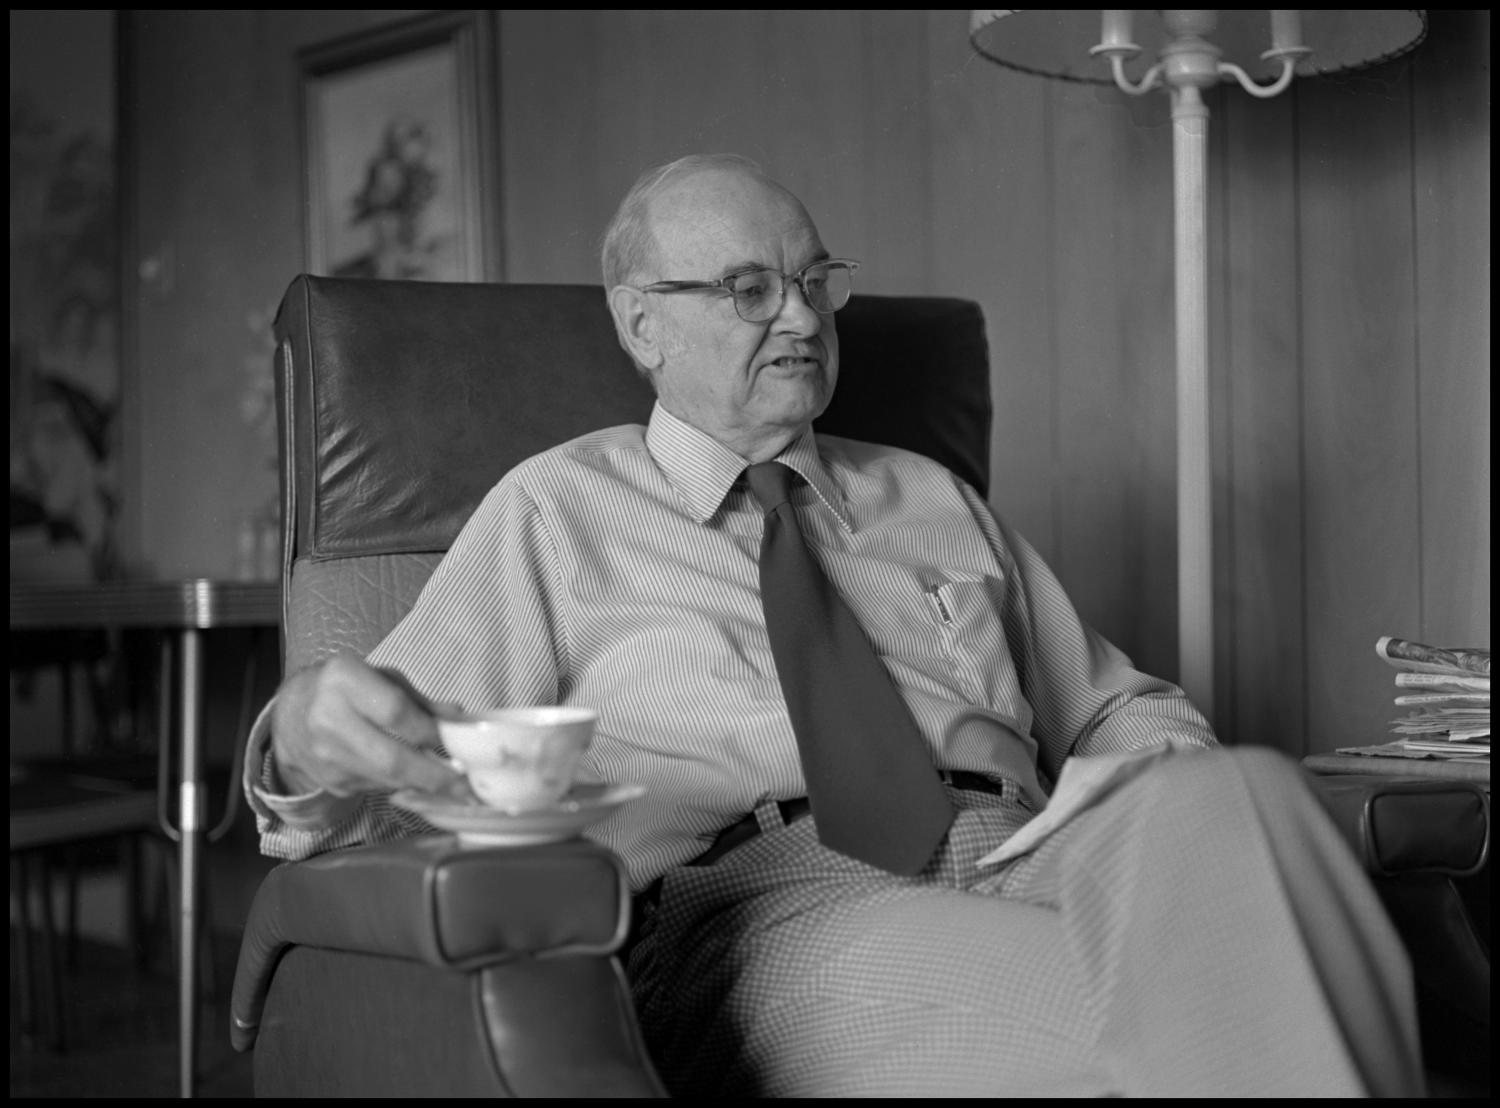 [Garland Brookshear sitting in chair with teacup], Photograph of Garland Brookshear, a member of the Management faculty at NTSU, sitting in an easy-chair with his teacup placed on the armrest. He is lifting it off of the saucer and appears to be saying something. Brookshear is being photographed for his retirement.,